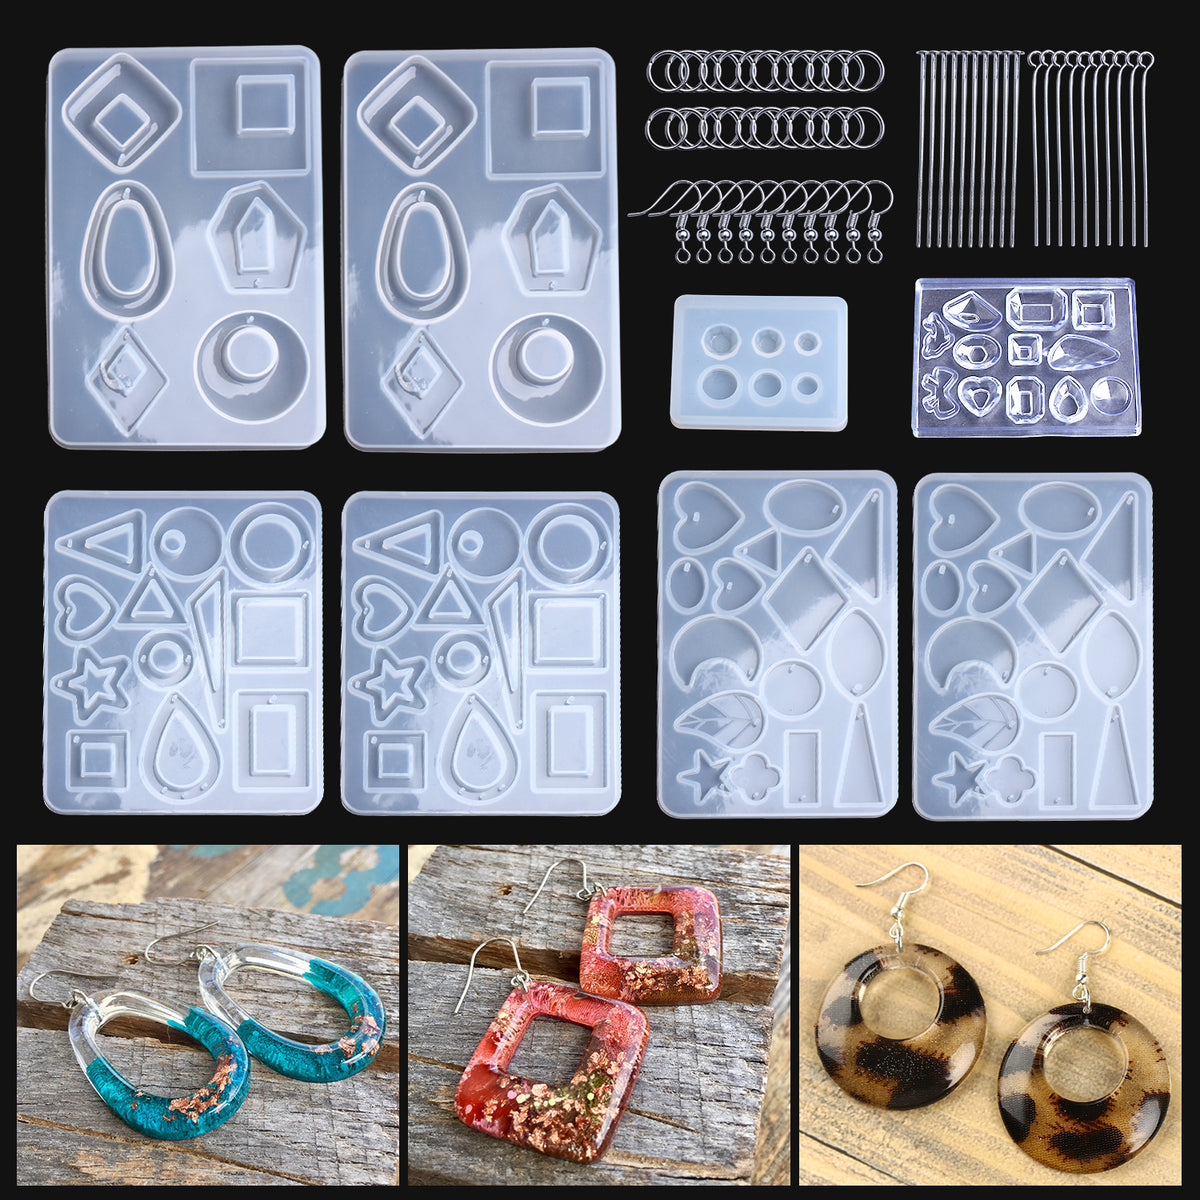 2Pcs Earring Resin Molds Bohemian Drop Dangle for Resin Casting Jewelry Making-Epoxy Resin Crafts DIY Crystal Epoxy Earrings Resin Mold Ear Hooks Pendant Silicone Mould Handmade Jewelry Making Tools